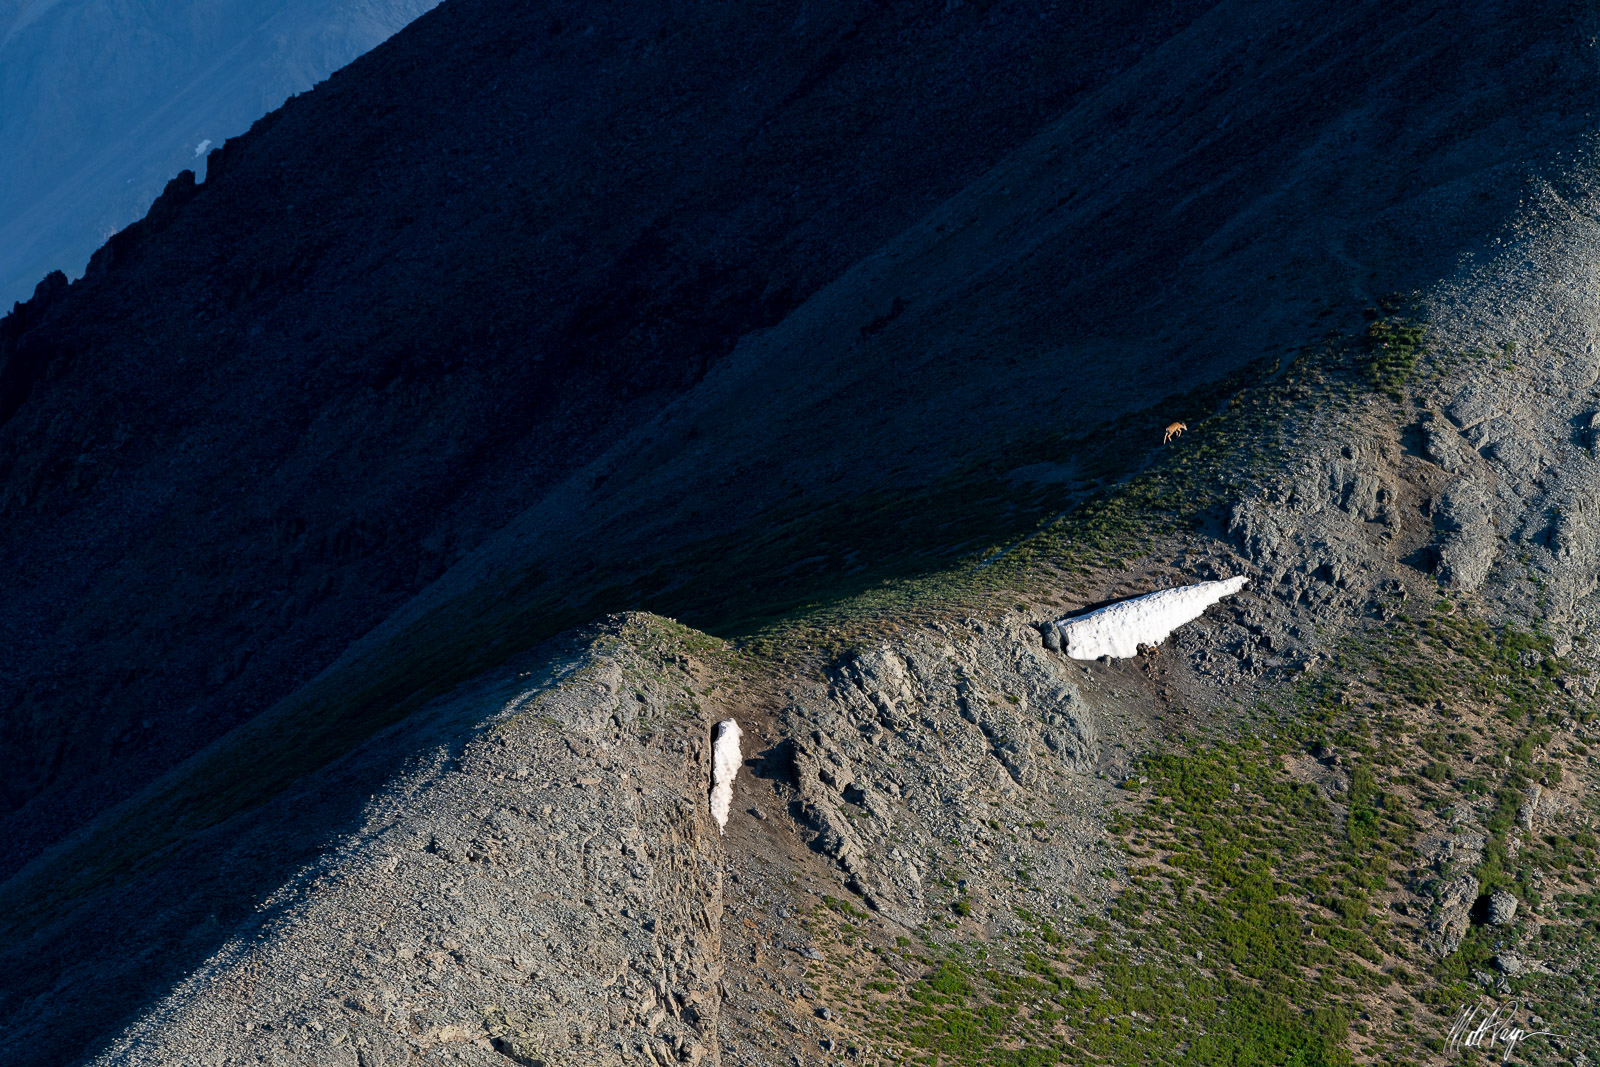 As I was climbing a mountain near Silverton, Colorado, I spotted a deer high above treeline climbing a nearby peak on its own...